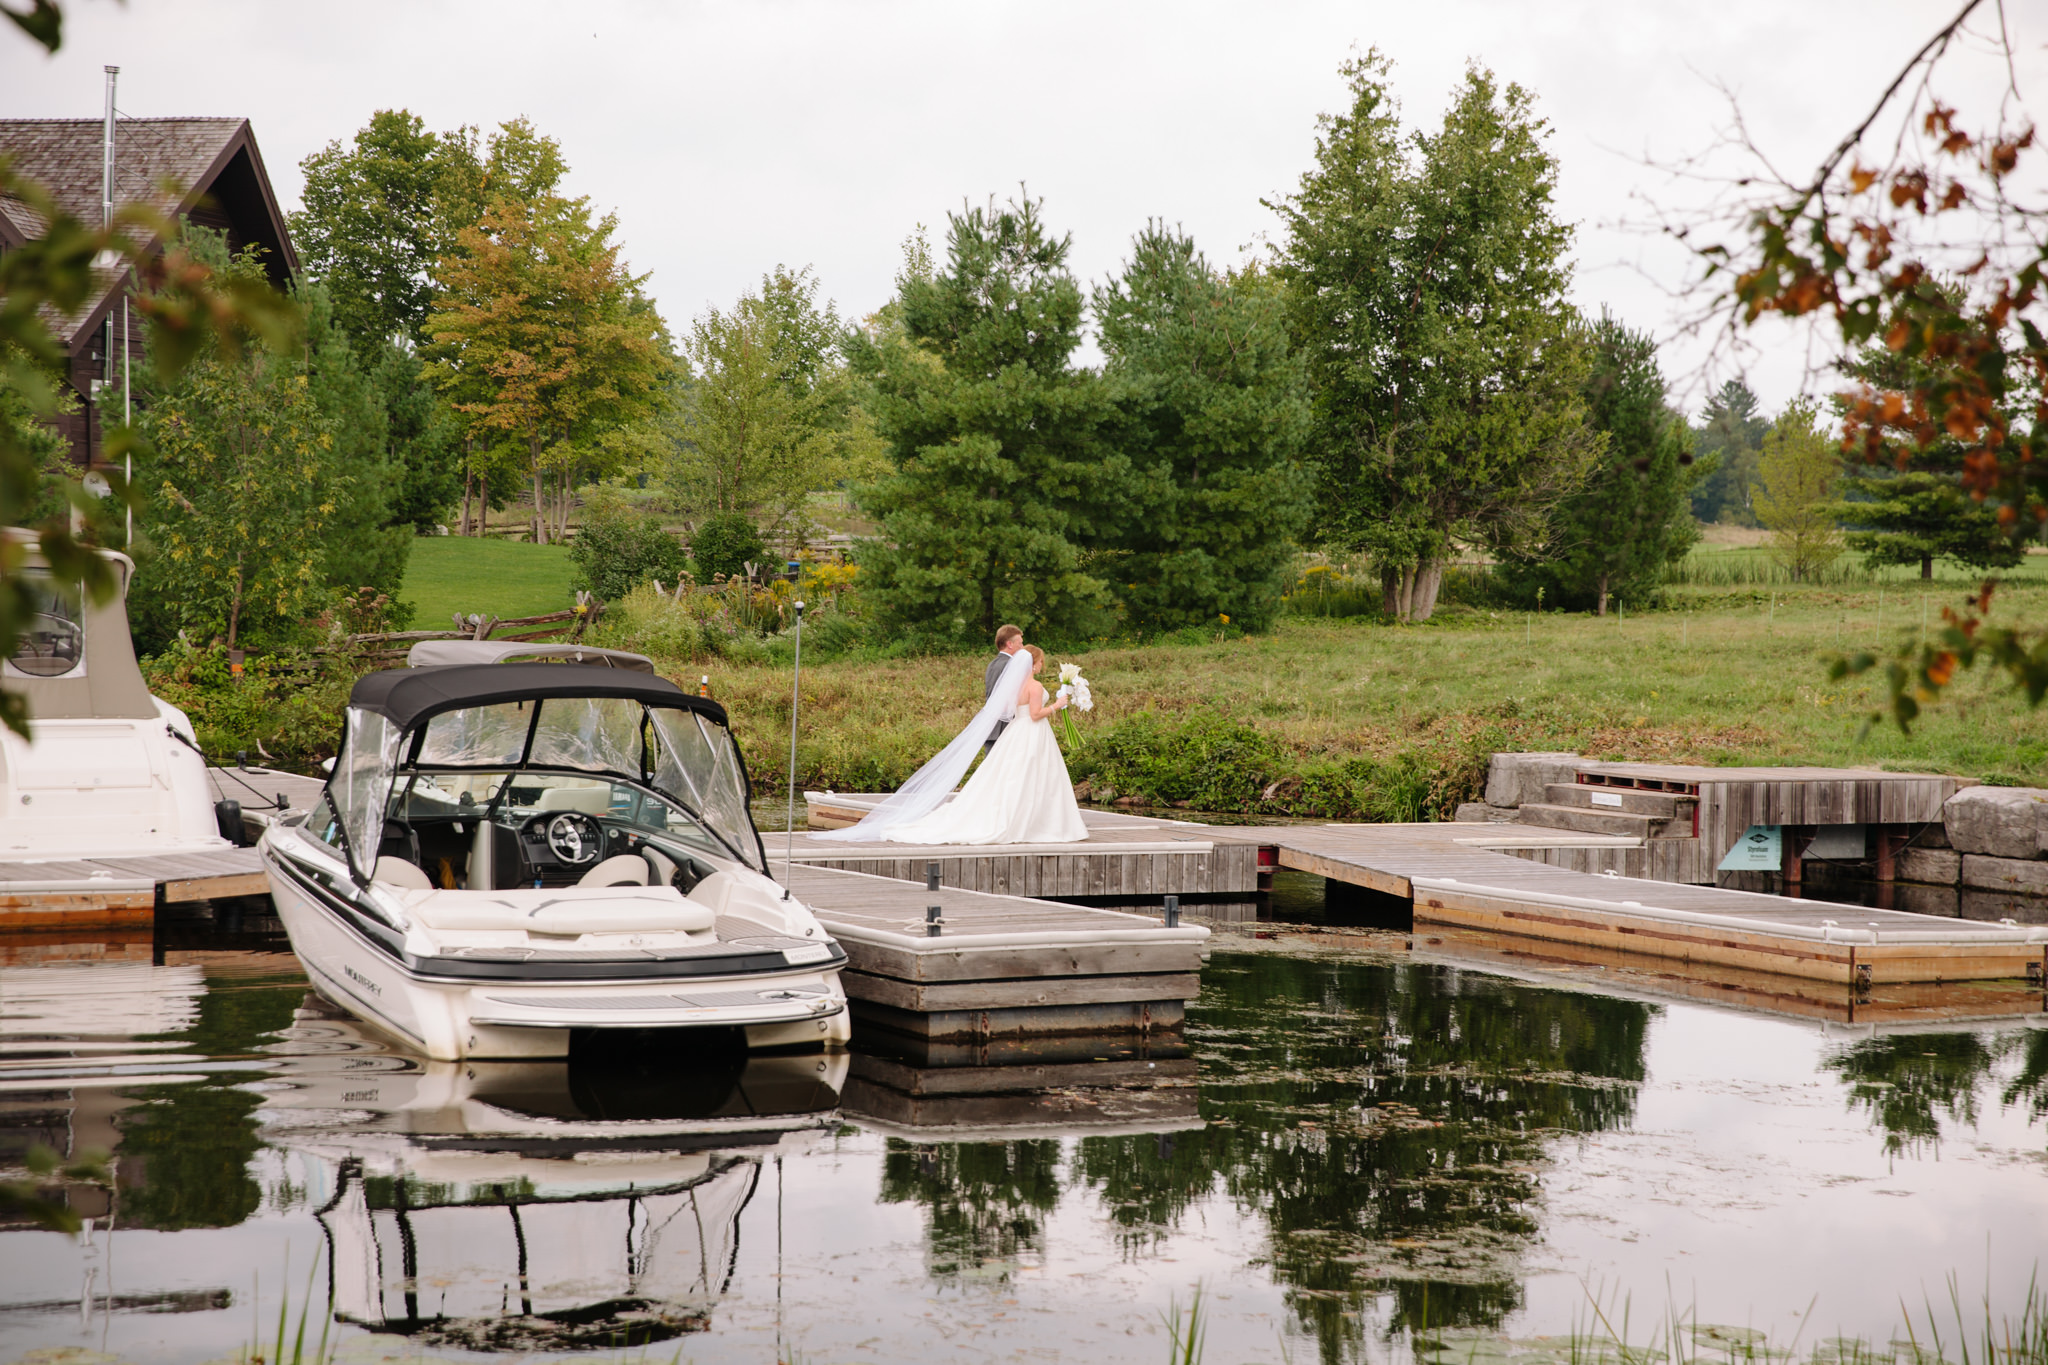 bride coming off boat down dock to enter for wedding ceremony